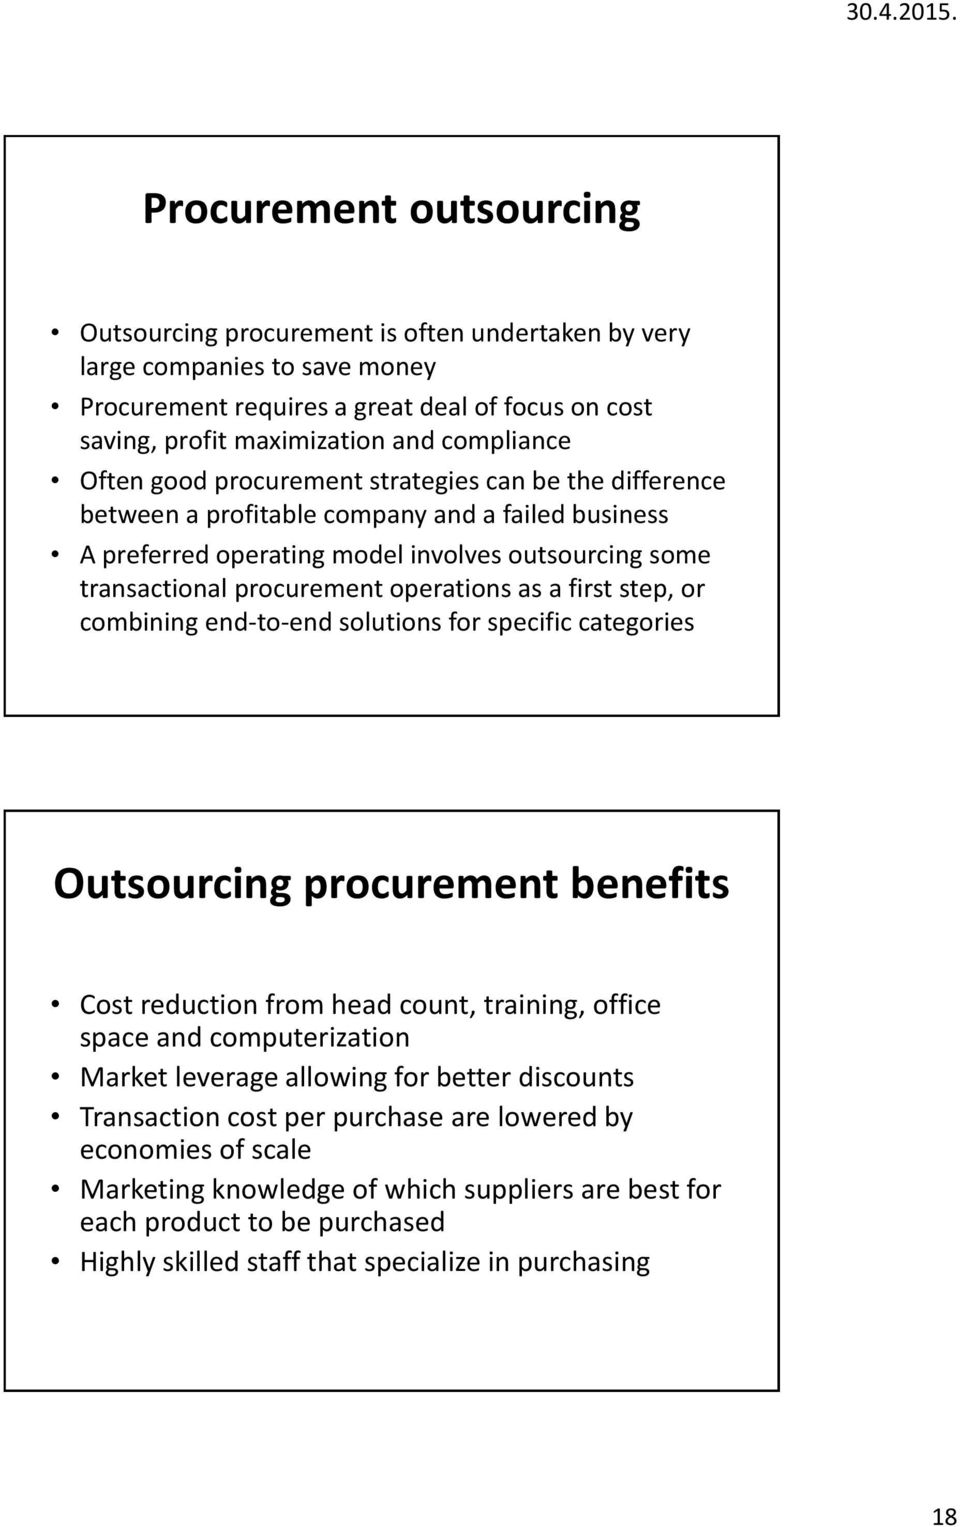 as a first step, or combining end-to-end solutions for specific categories Outsourcing procurement benefits Cost reduction from head count, training, office space and computerization Market leverage